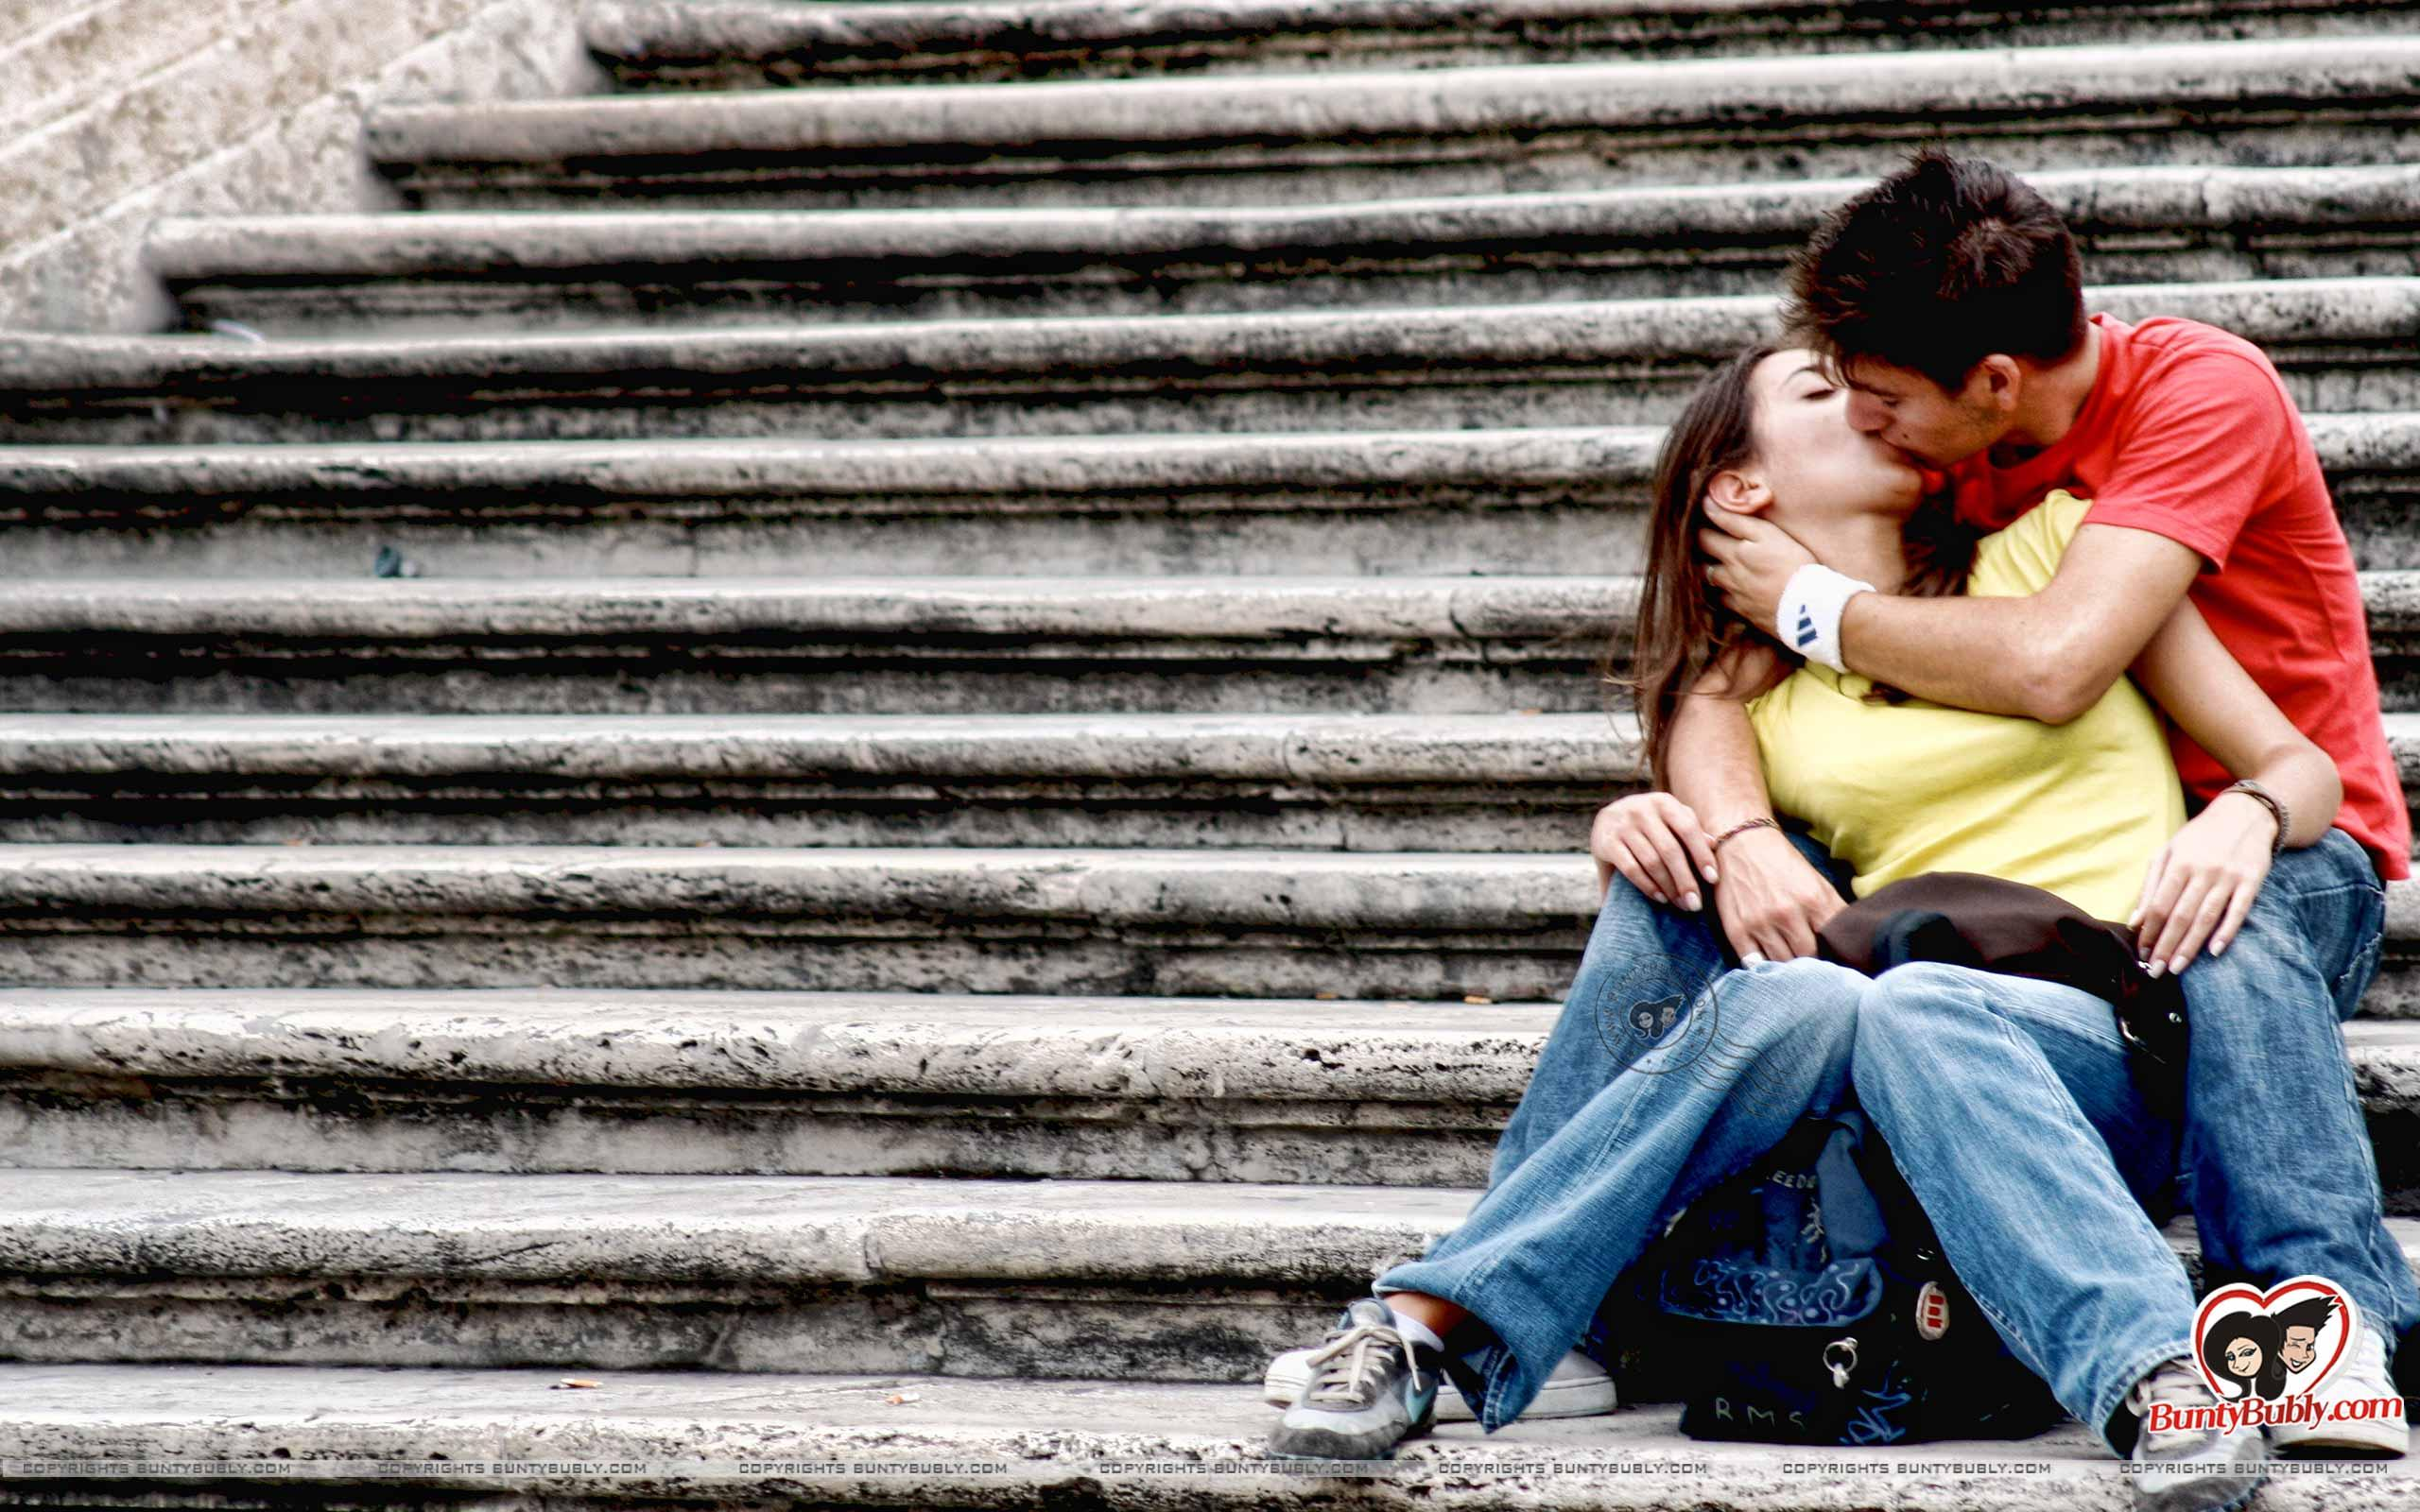 Kiss-Day-2016-Romantic-Status-Happy-Kiss-Day-Facebook-Status-Whatsapp-Messages